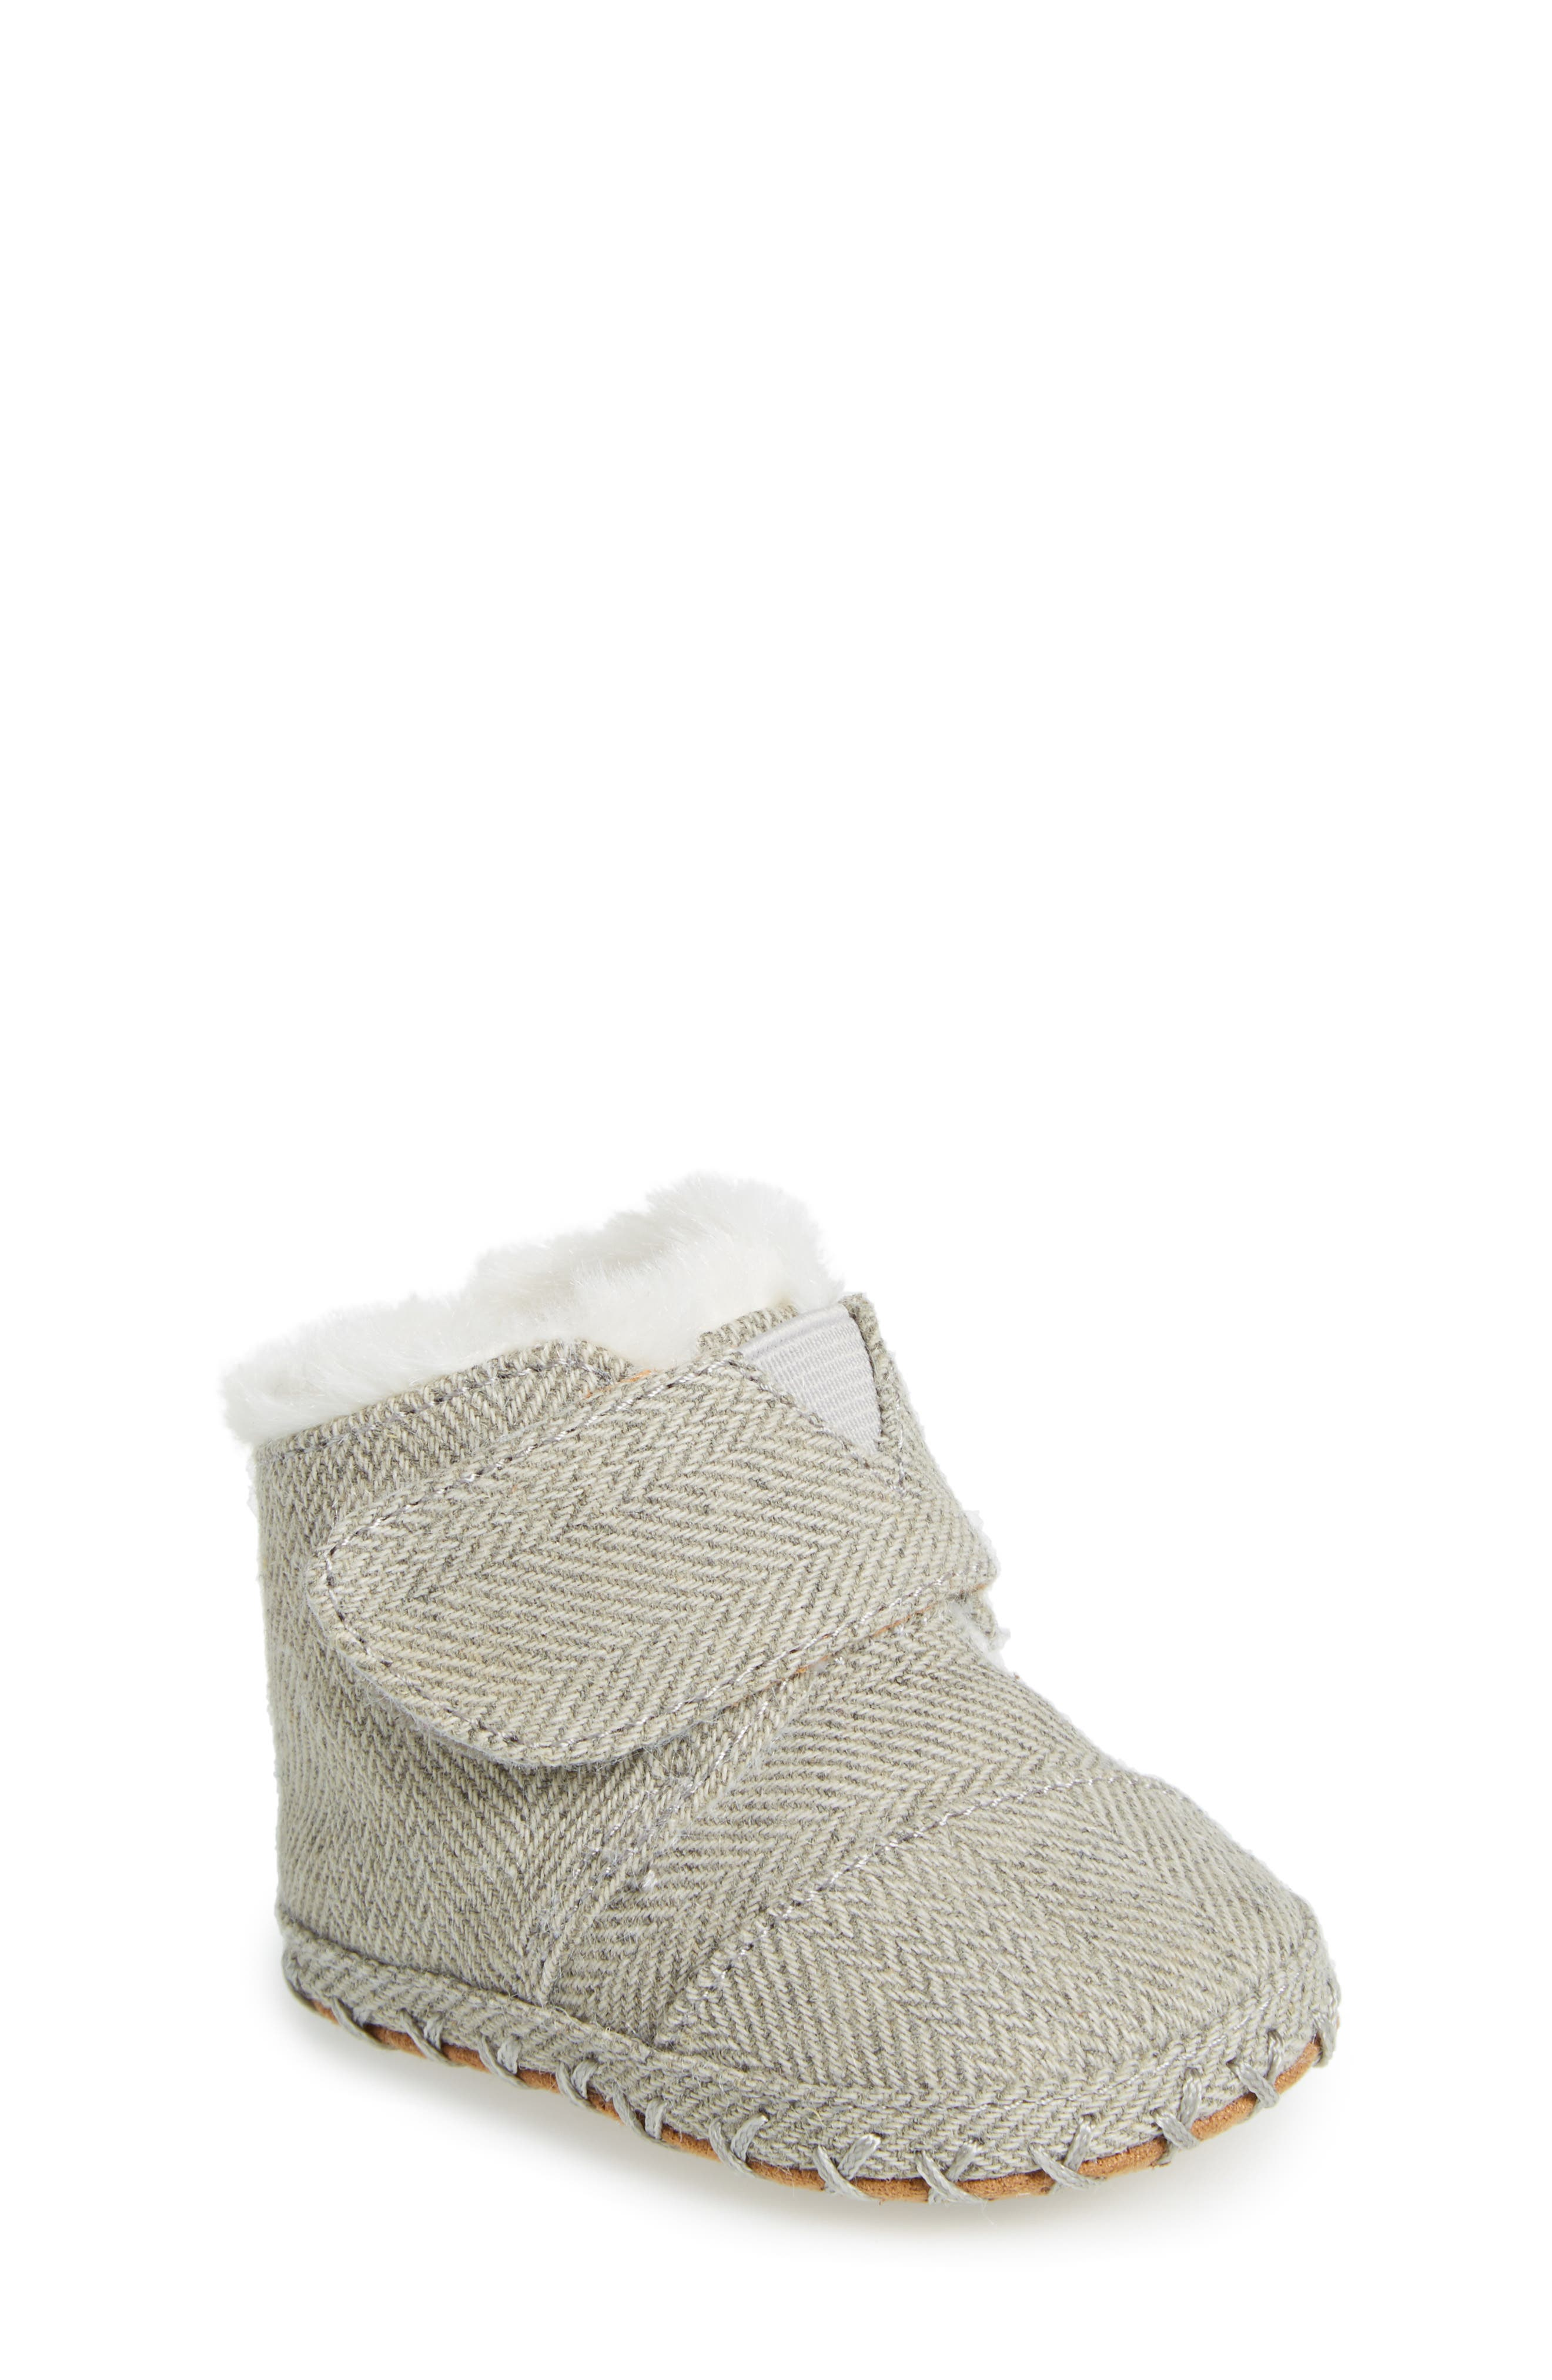 blucher suede pinterest shoes pepito pin boys baby cribs toms rice crib